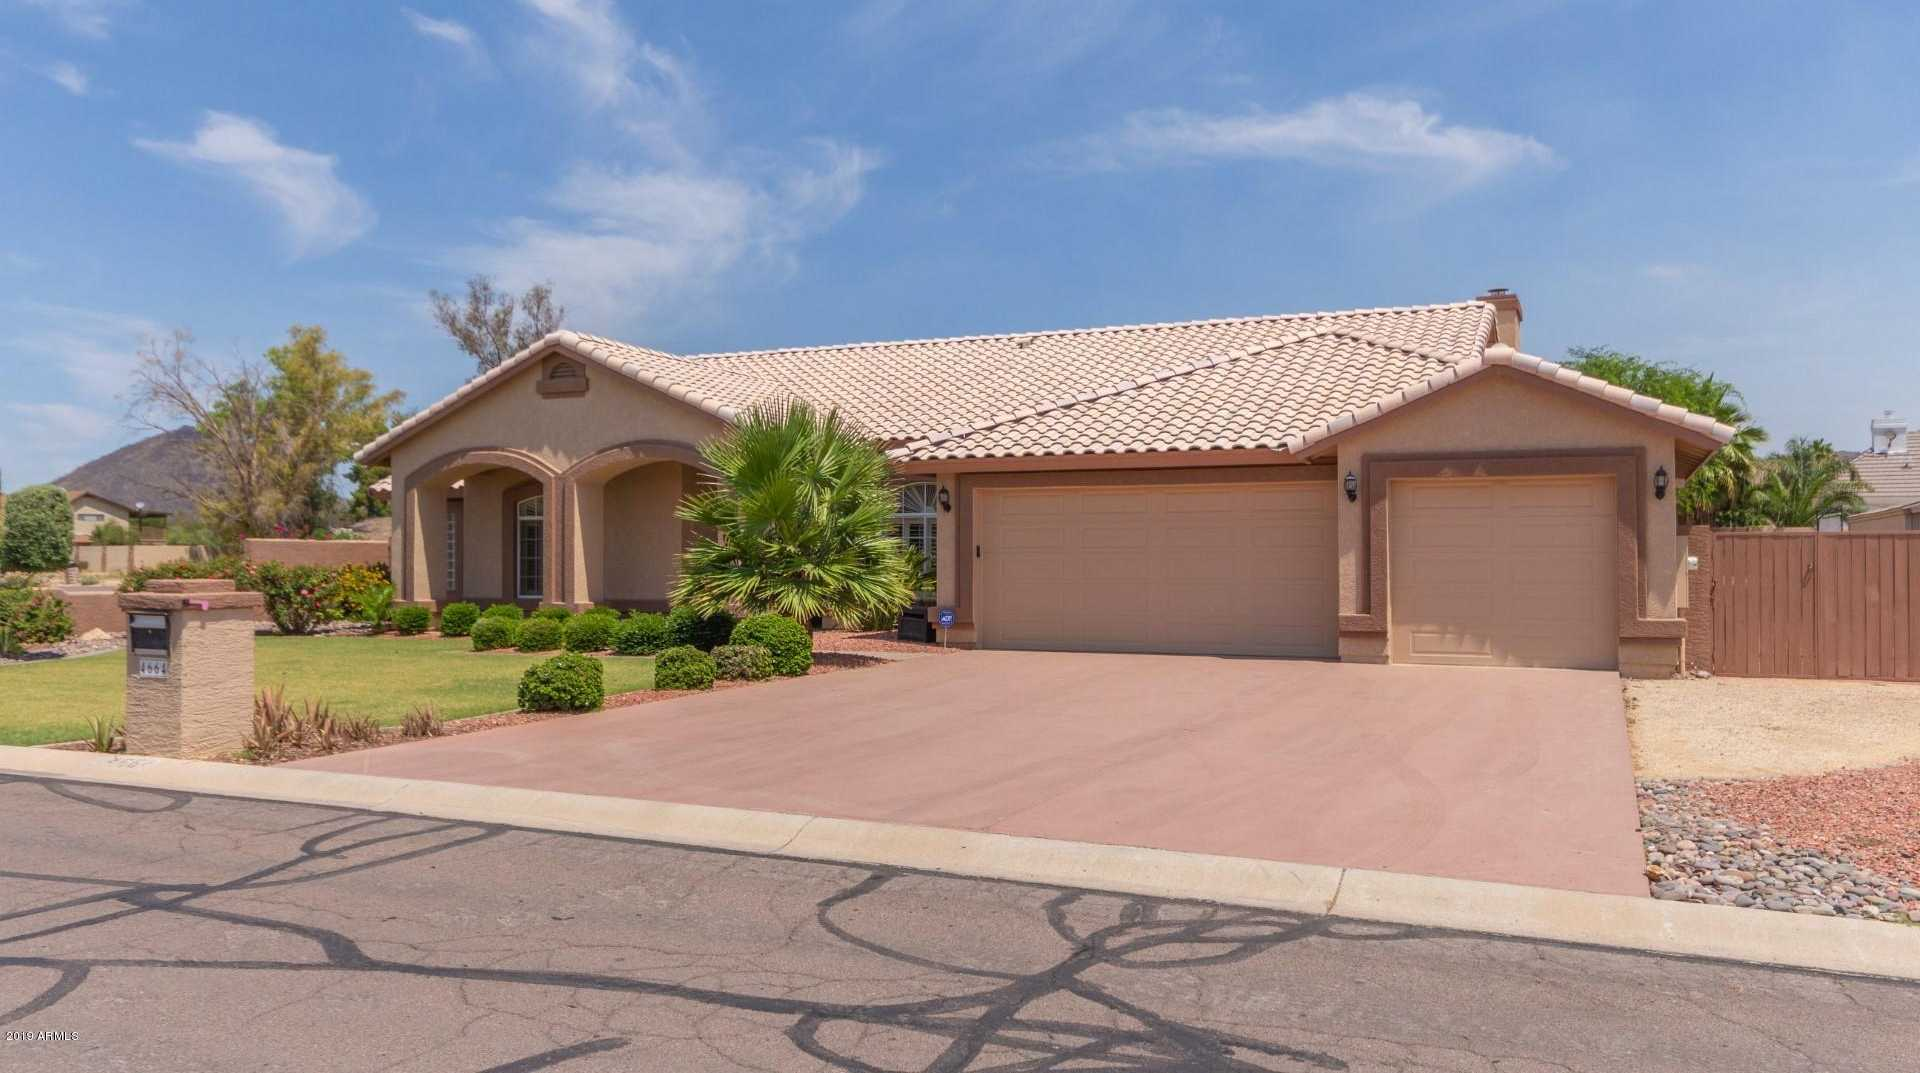 $559,990 - 4Br/3Ba - Home for Sale in Saddle Ranch Estates Unit 2, Glendale